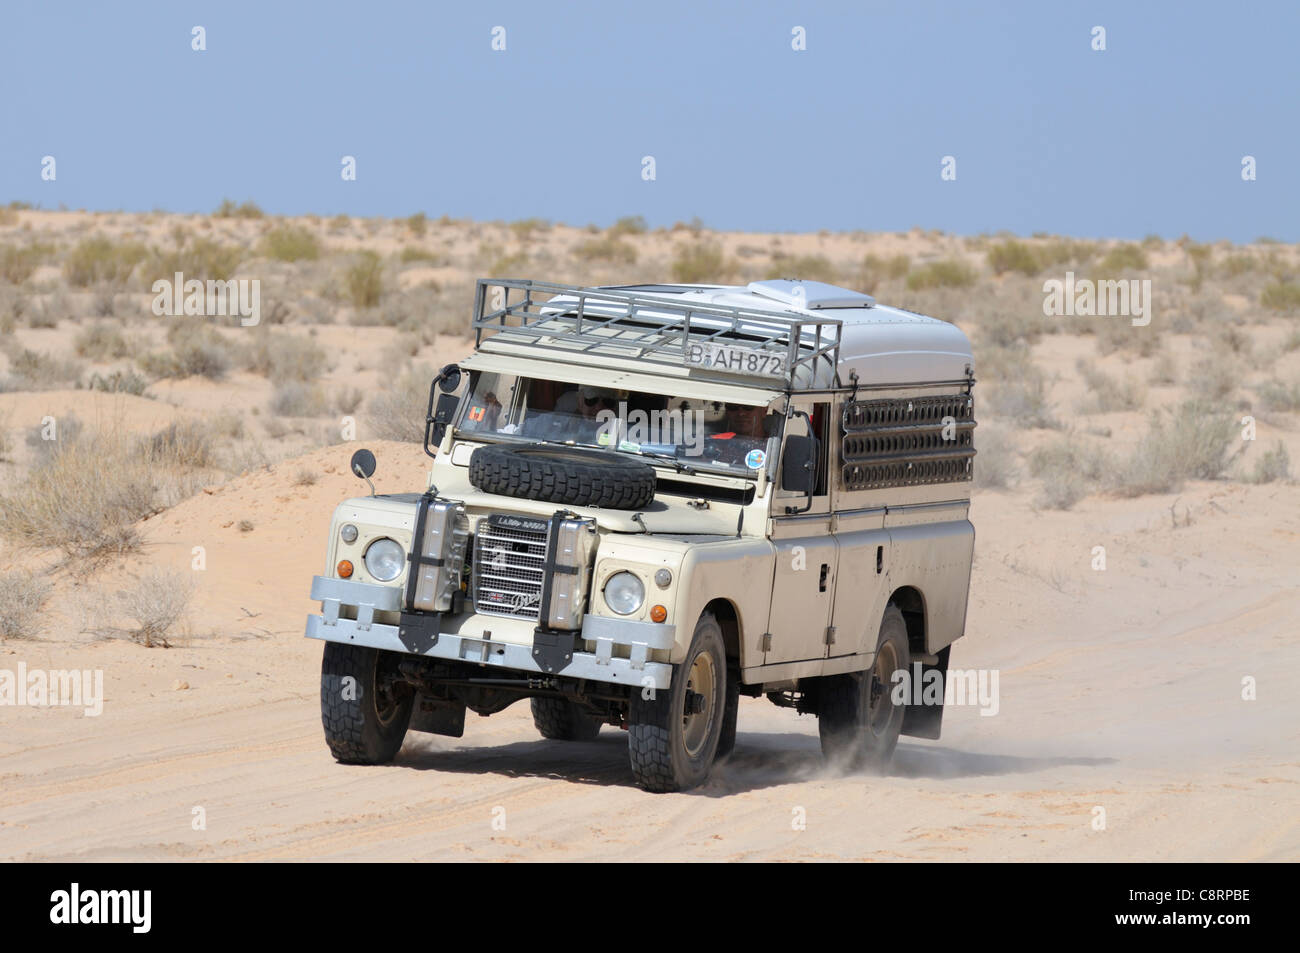 Africa, Tunisia, south of Douz. Land Rover Series 3 Dormobile on a journey through the desert from Douz versus Tembaine - Stock Image